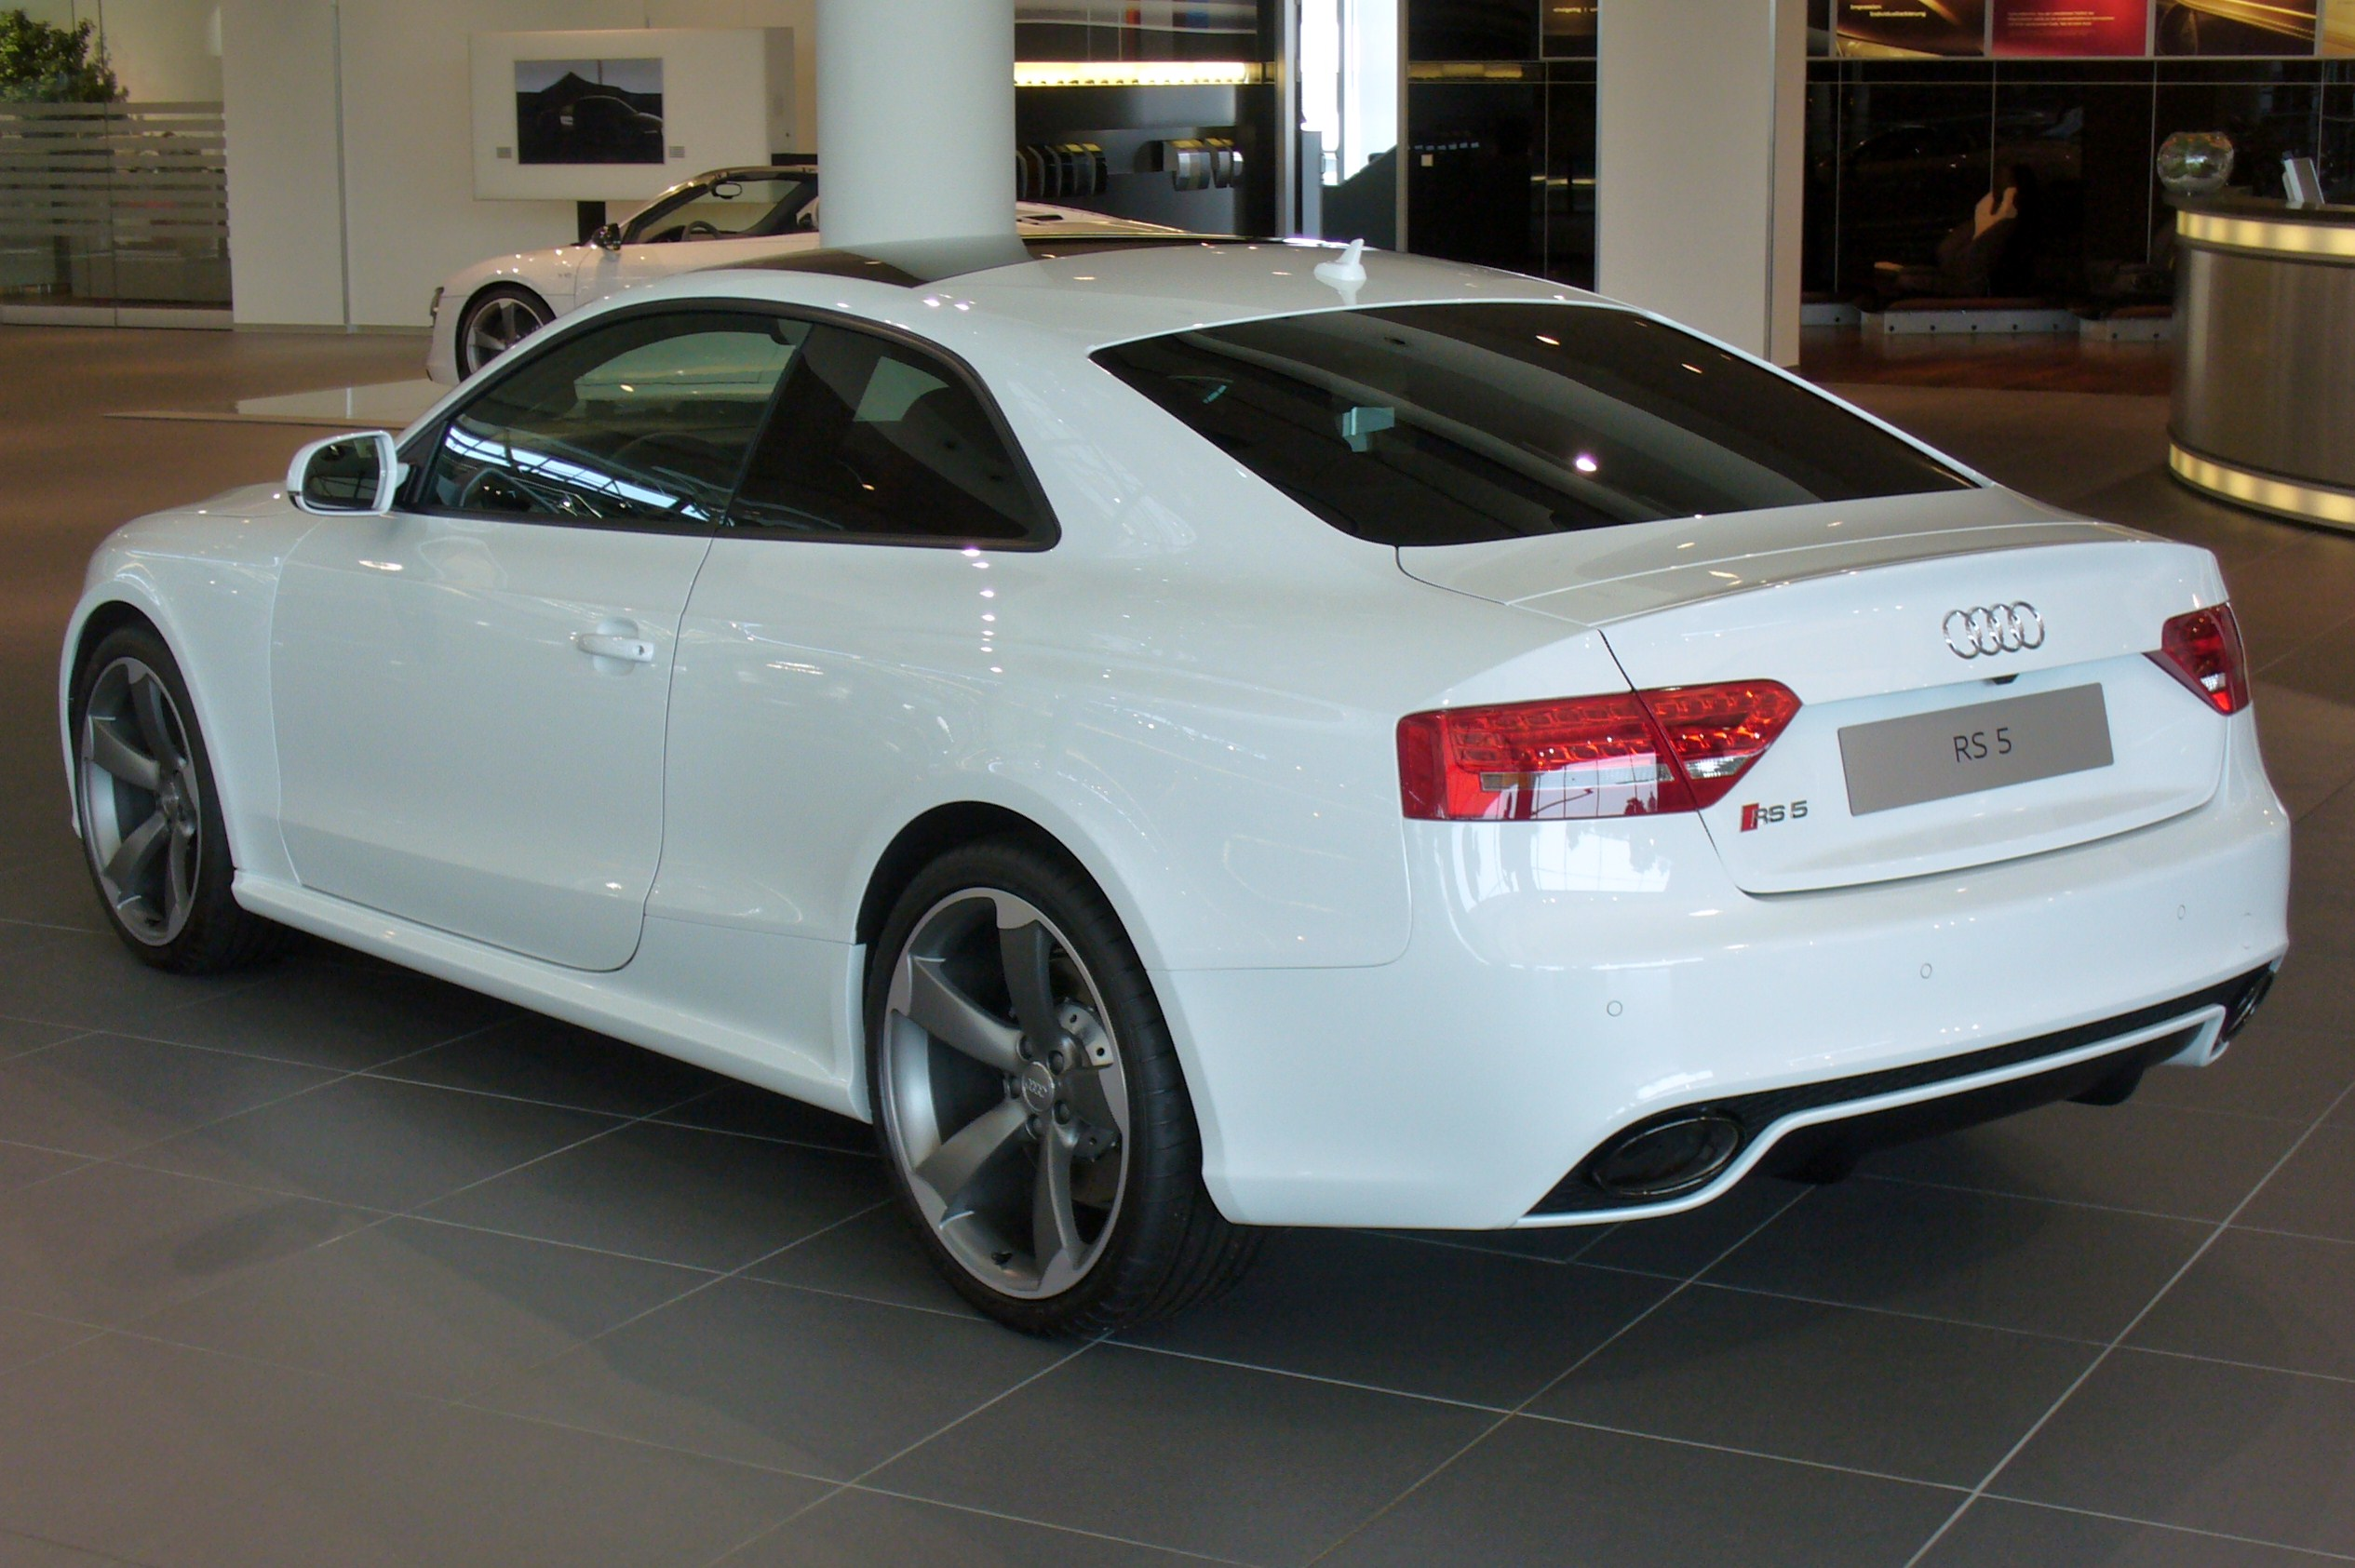 file audi rs5 coup 4 2 fsi quattro s tronic heck jpg wikimedia commons. Black Bedroom Furniture Sets. Home Design Ideas